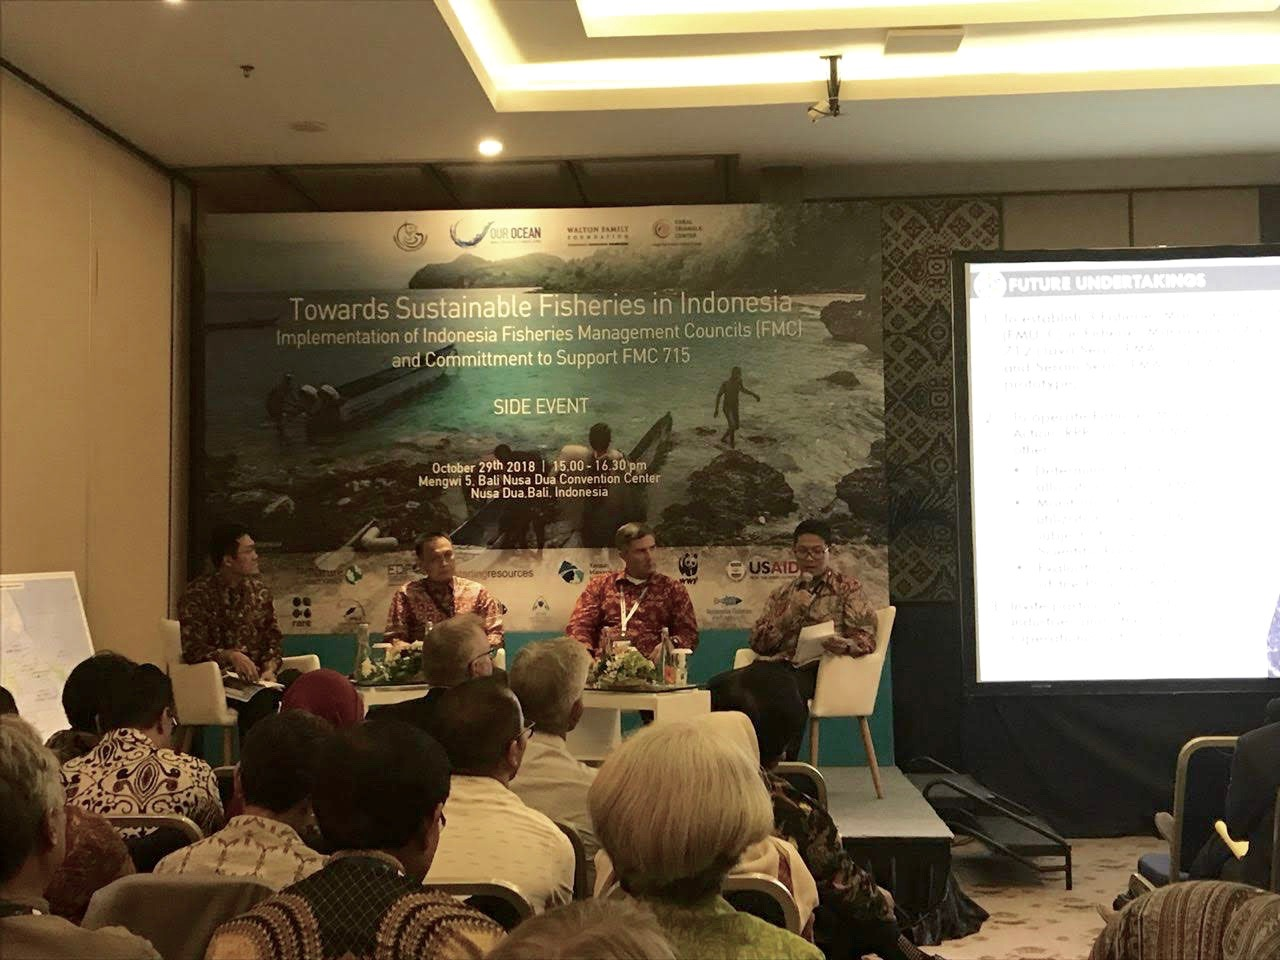 Officials discuss future tasks for achieving sustainable fisheries management in Indonesia during the Our Ocean 2018 conference.